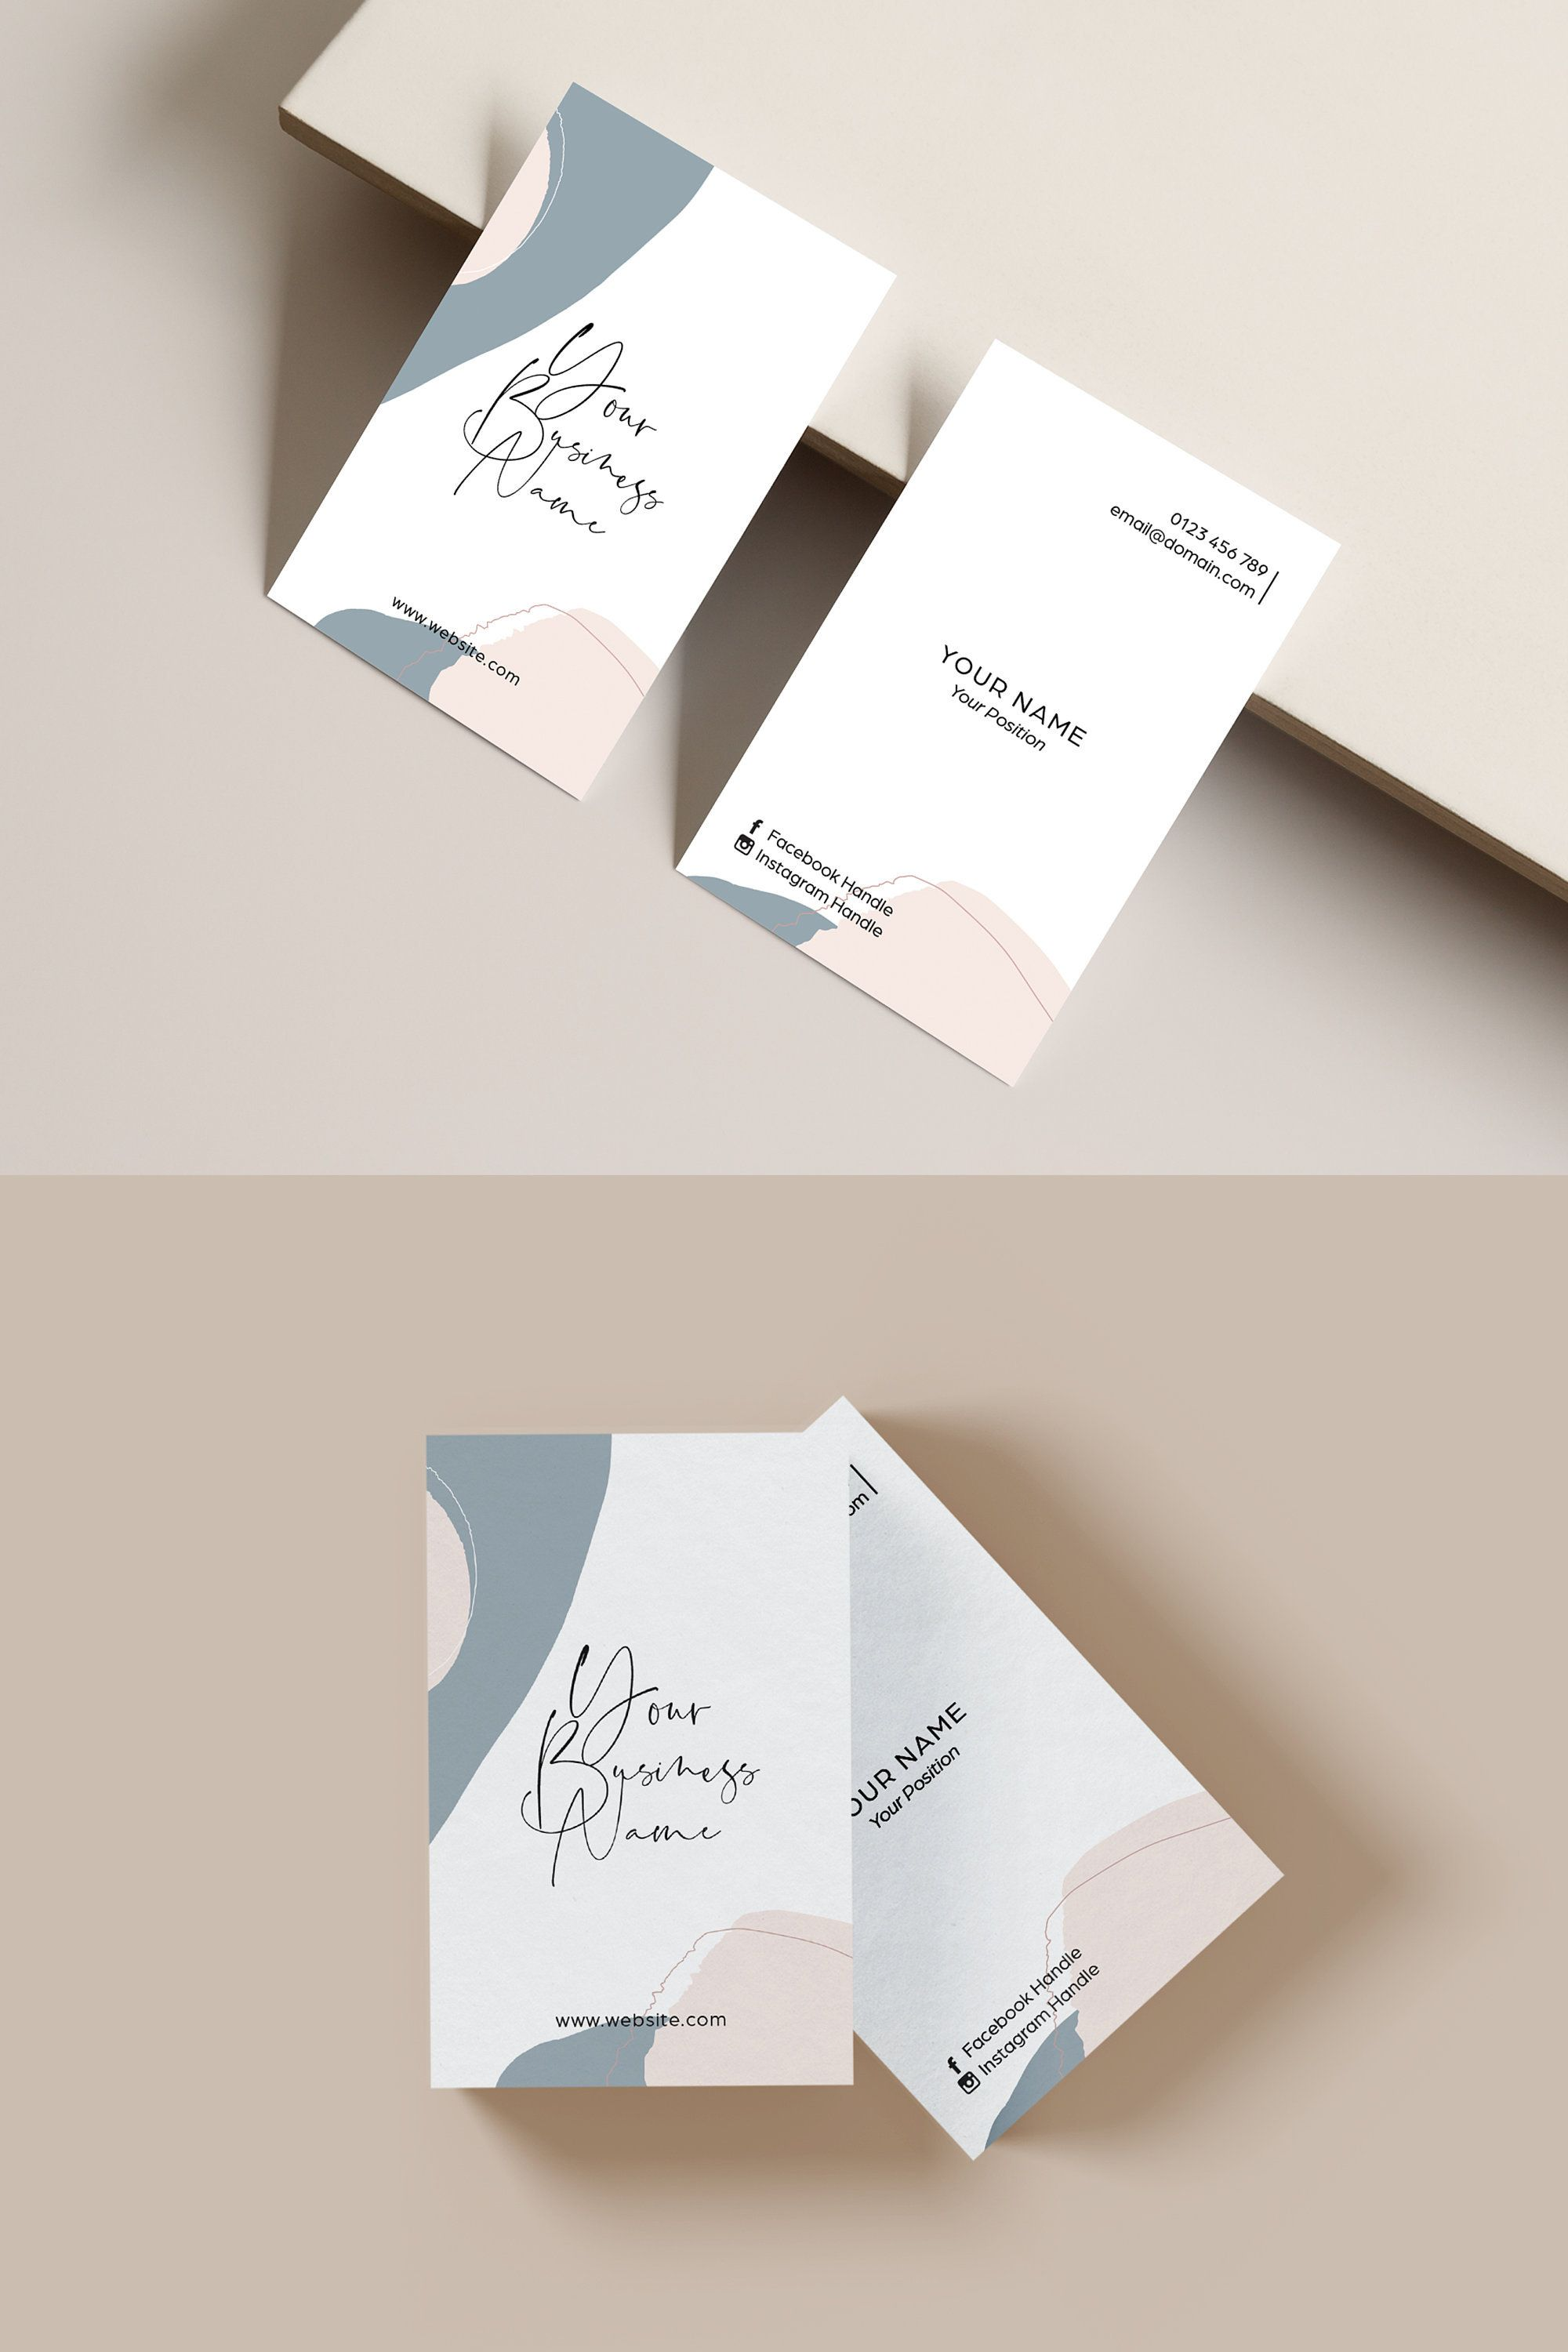 Editable Abstract Modern Business Card Corjl Template Charcoal And Blush Minimalist Business Card Branding Printable Business Card Diy Graphic Design Business Card Business Cards Diy Templates Minimalist Business Cards